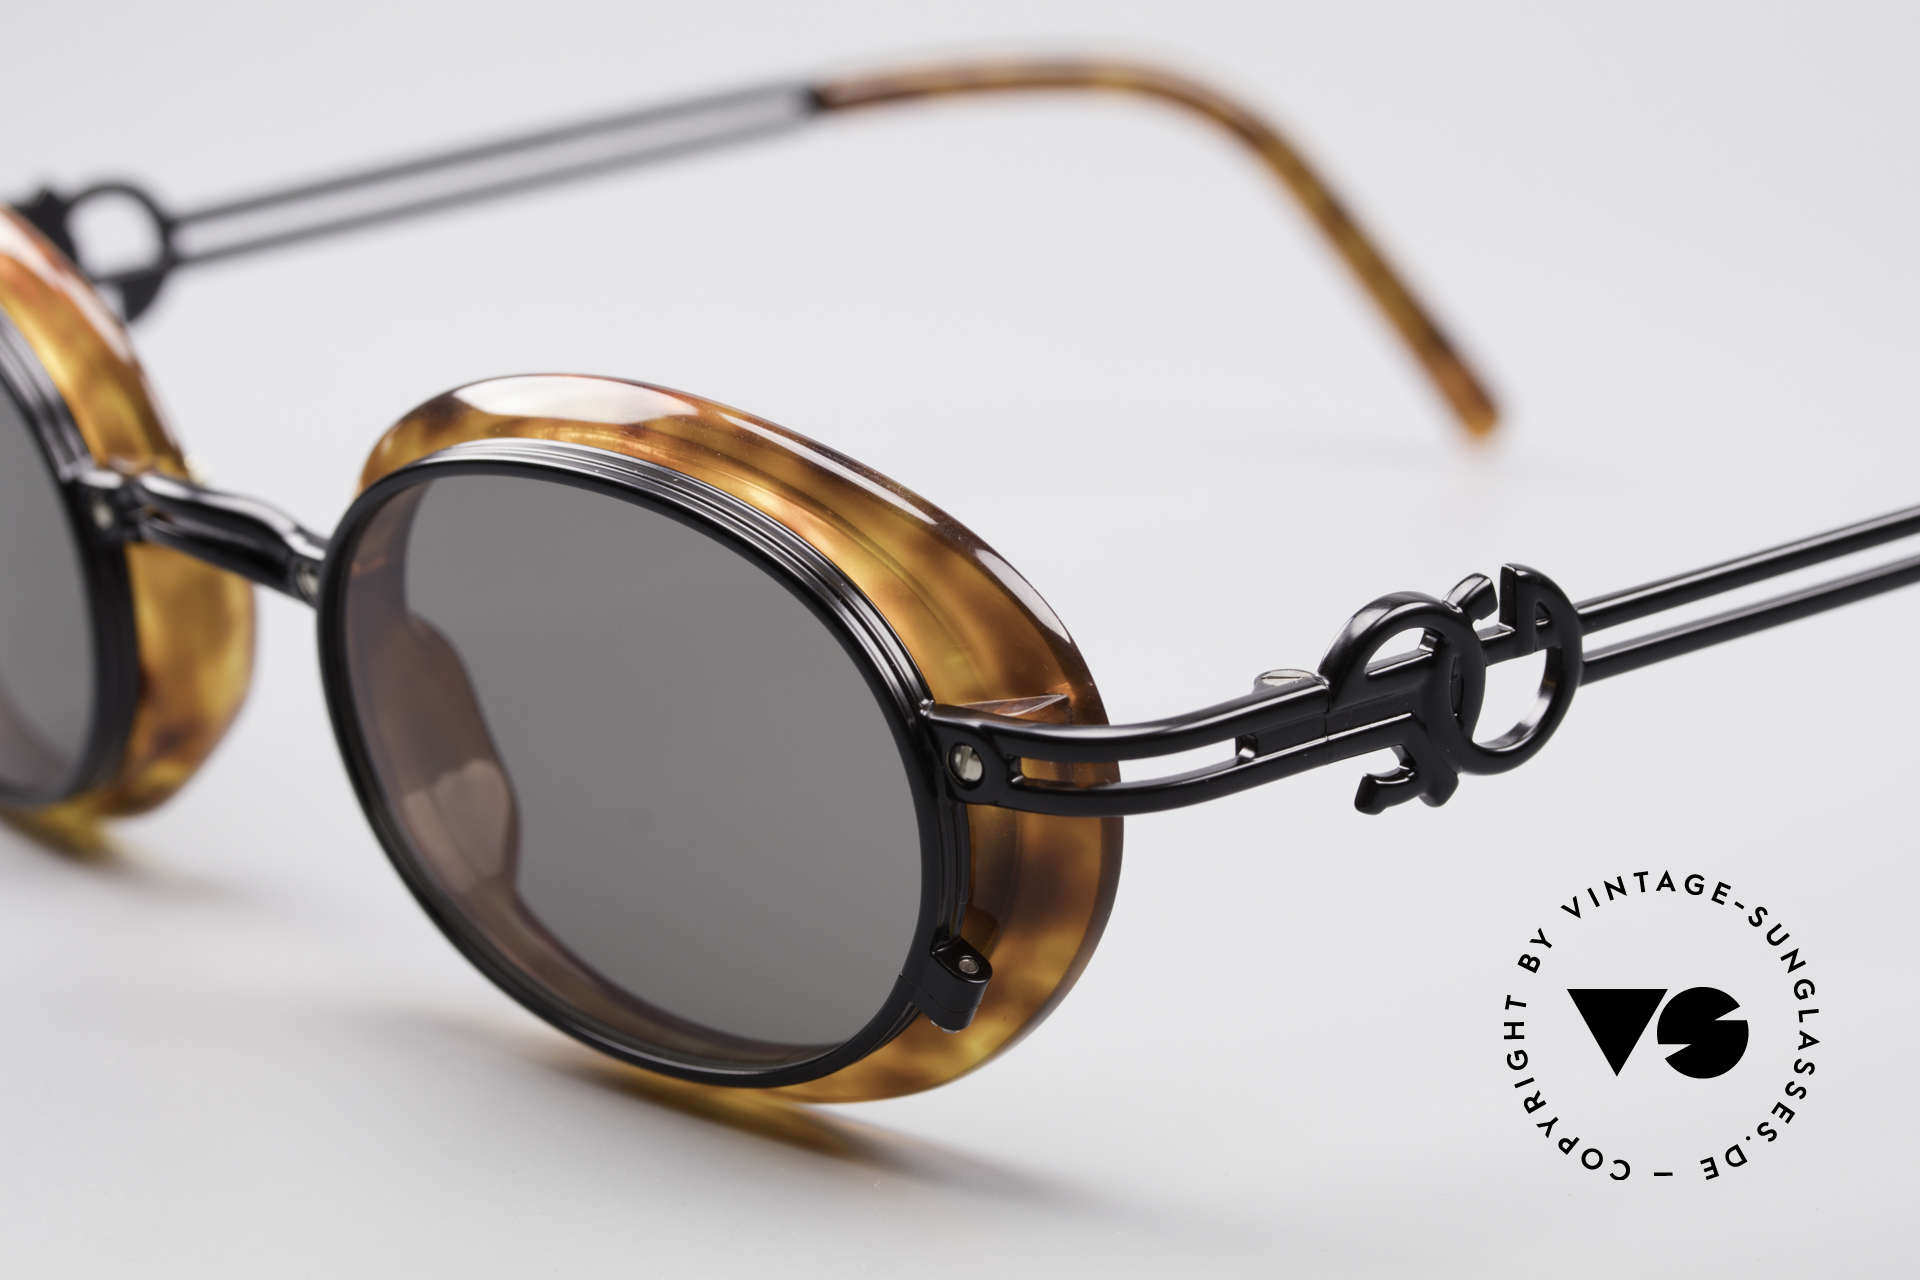 "Jean Paul Gaultier 58-5201 Rare 90's Steampunk Shades, often called as ""steampunk sunglasses"" these days, Made for Men and Women"